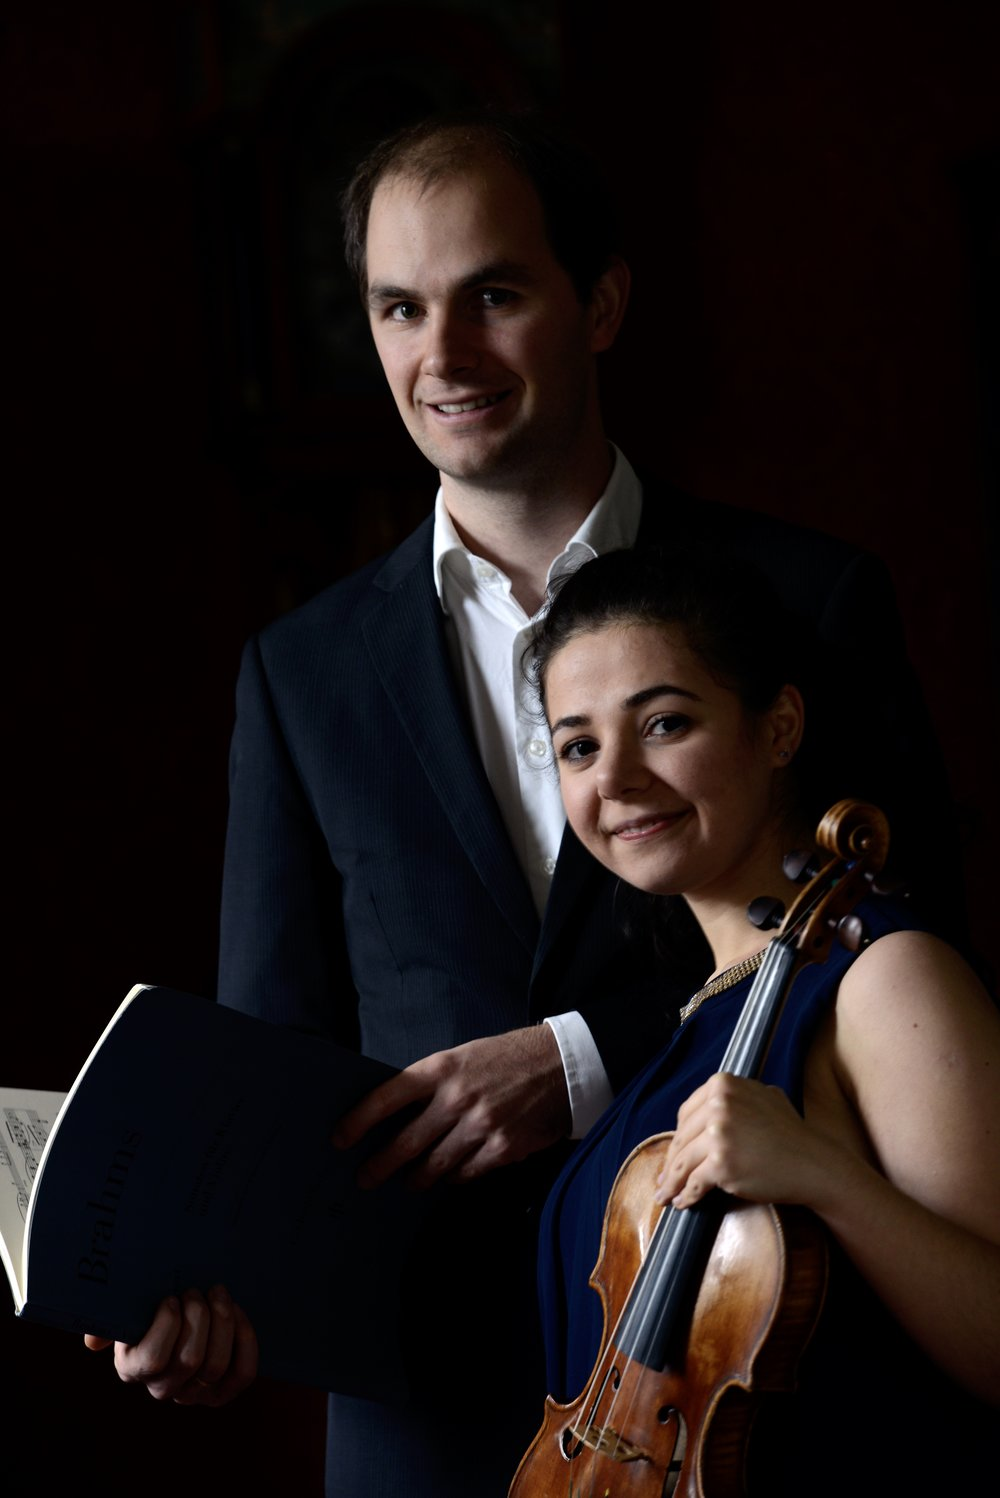 Robert Poortinga and Meri Khojayan, The Netherlands and Armenia